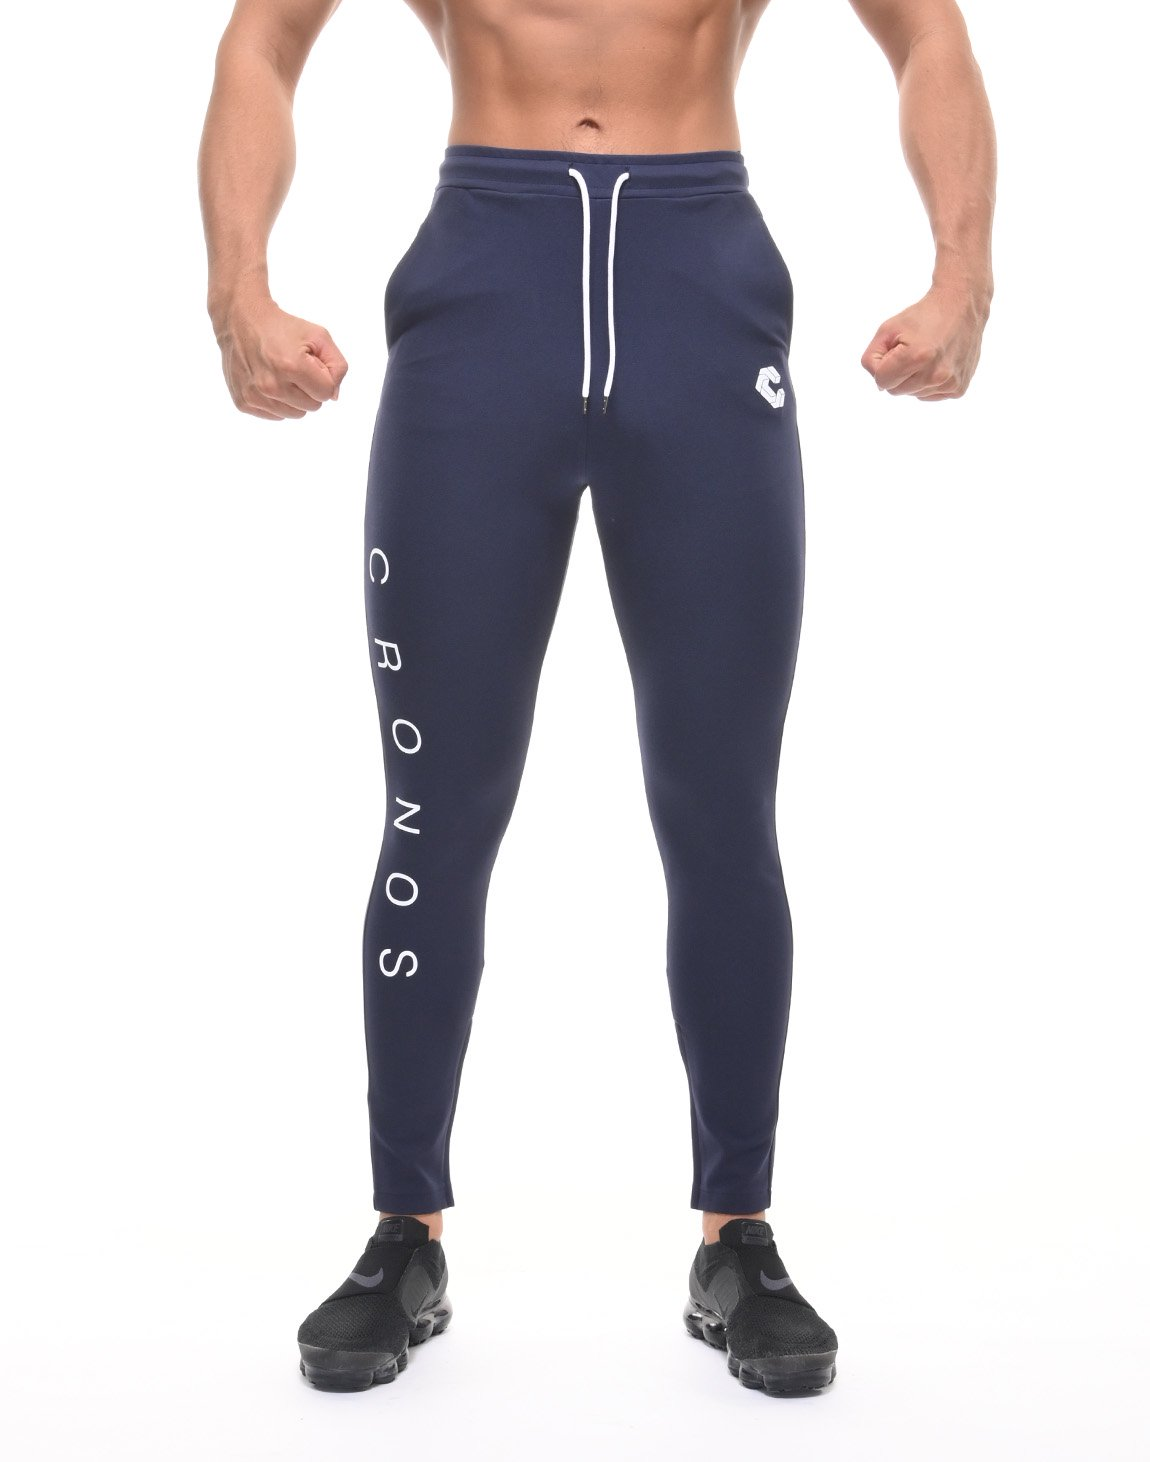 <img class='new_mark_img1' src='https://img.shop-pro.jp/img/new/icons1.gif' style='border:none;display:inline;margin:0px;padding:0px;width:auto;' />CRONOS SIDE FONT PANTS 【NAVY】